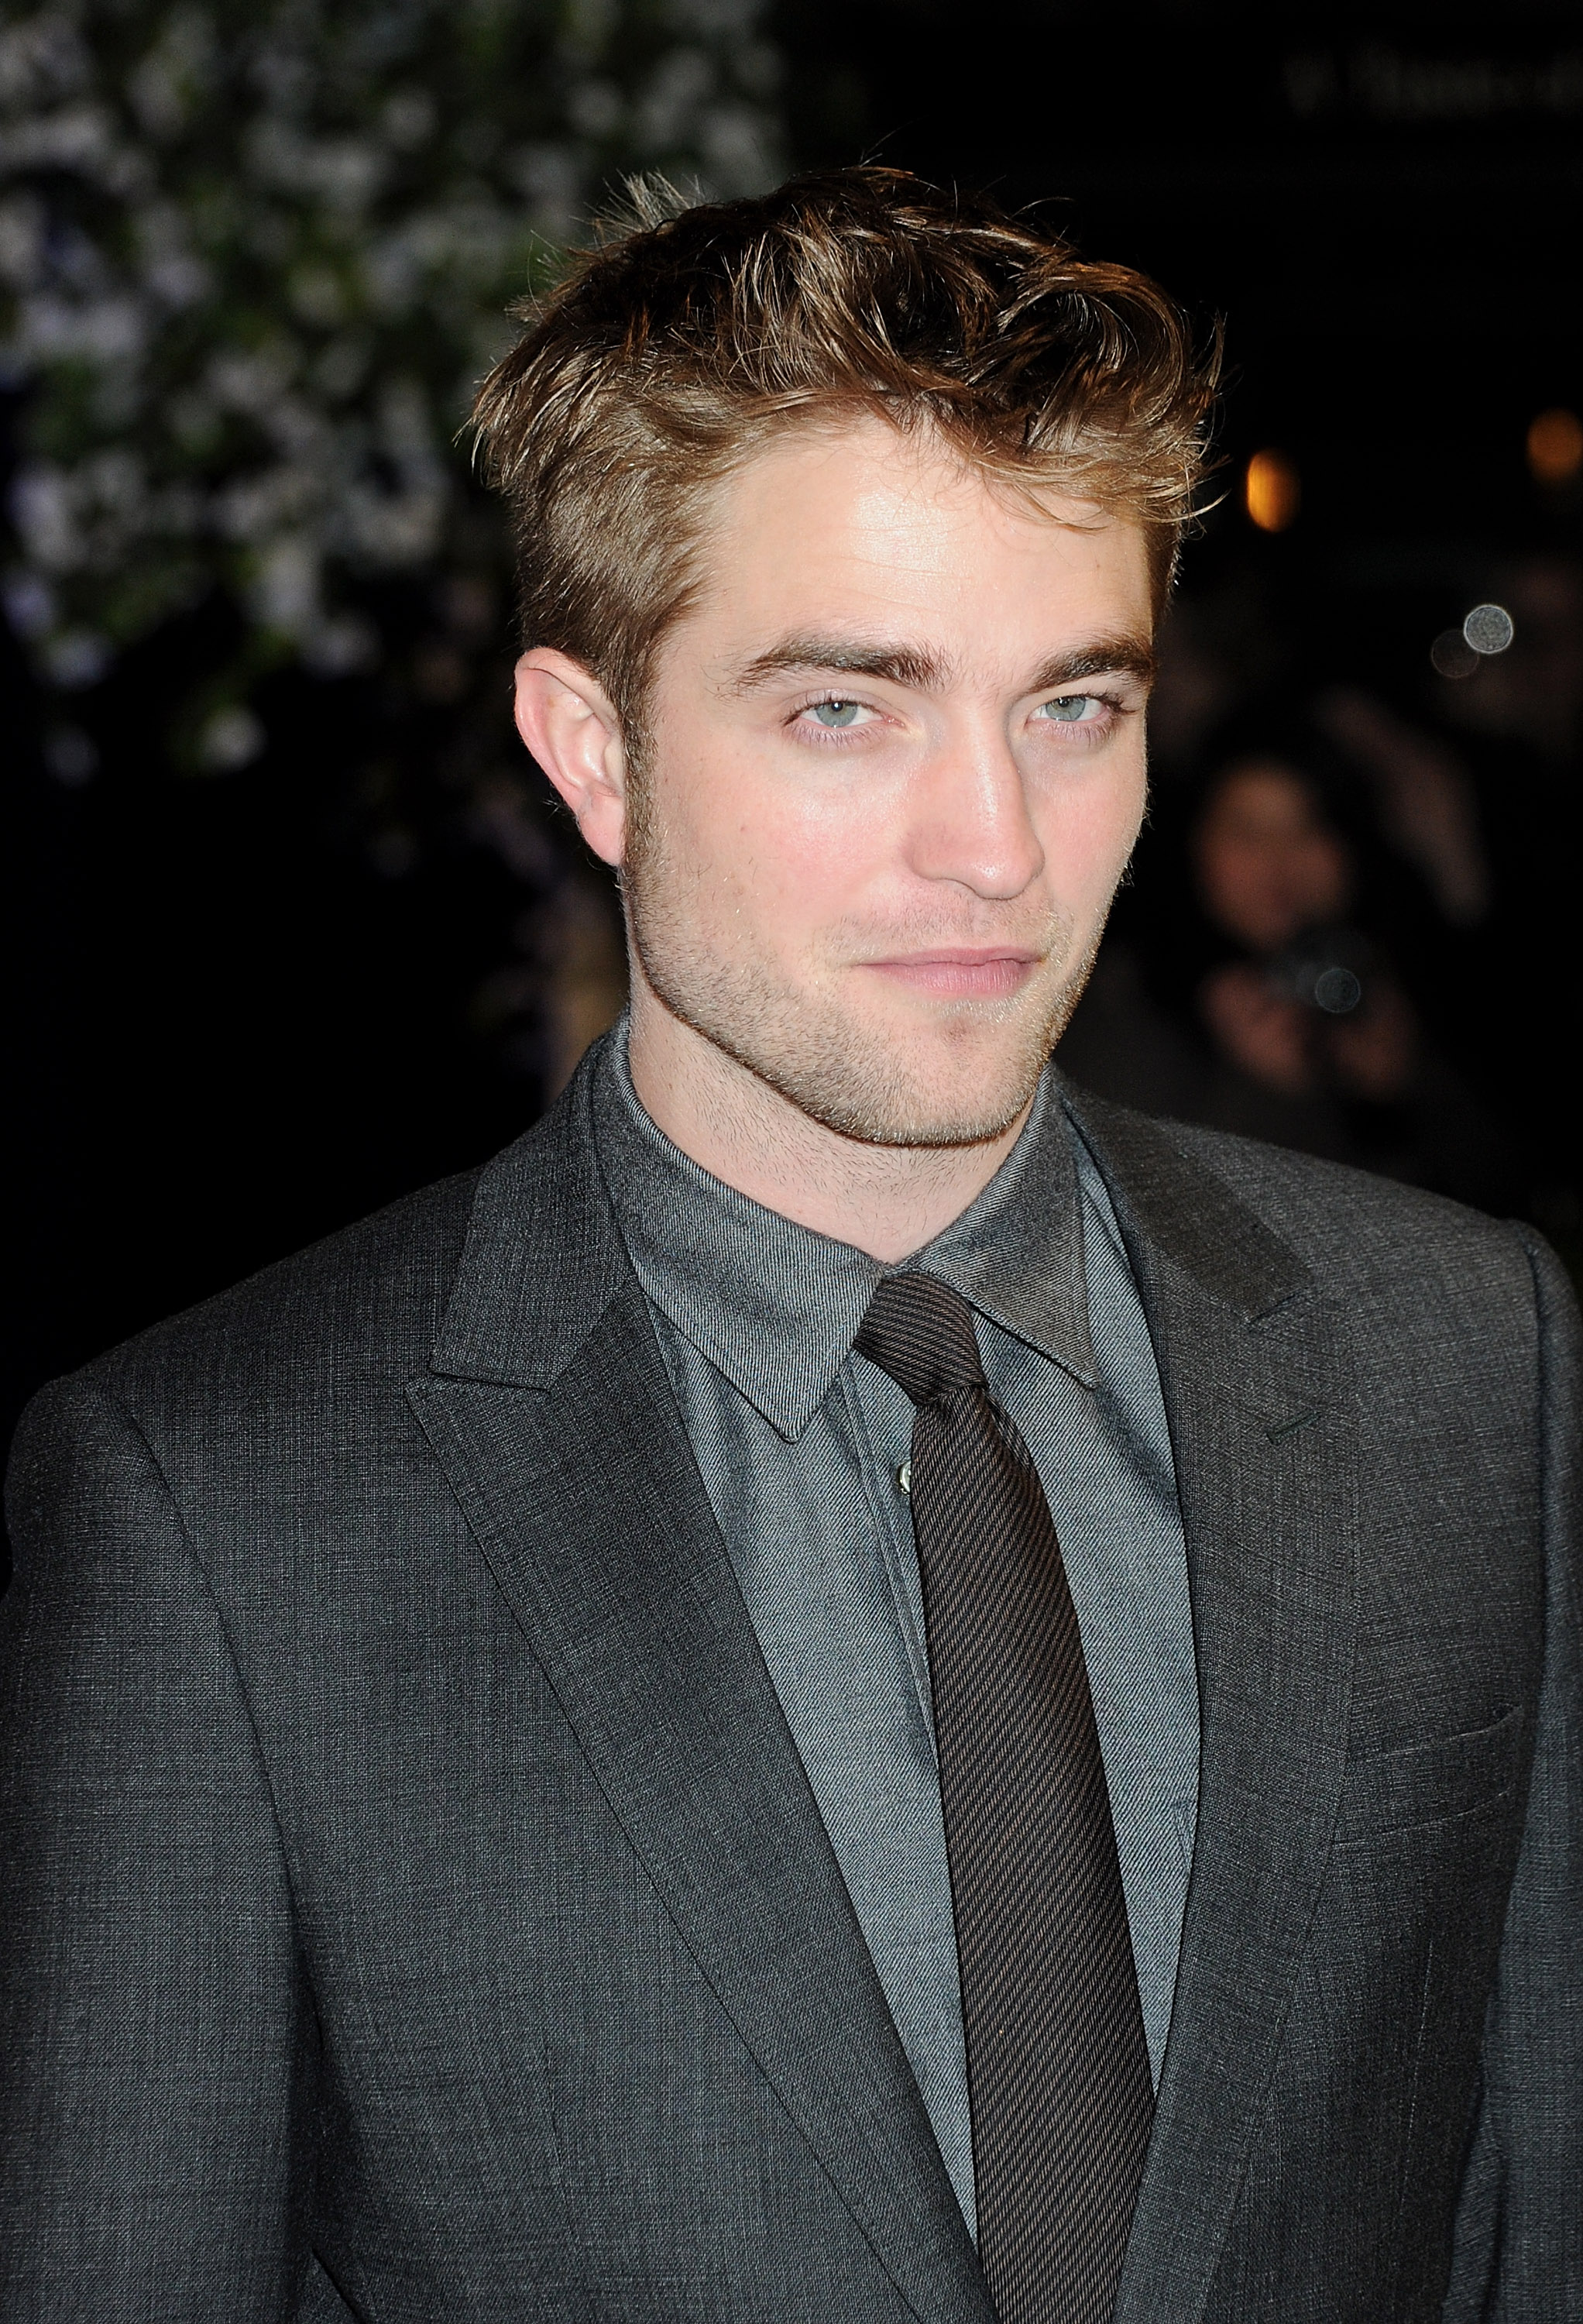 Robert Pattinson at the London premiere of Breaking Dawn Part 1.